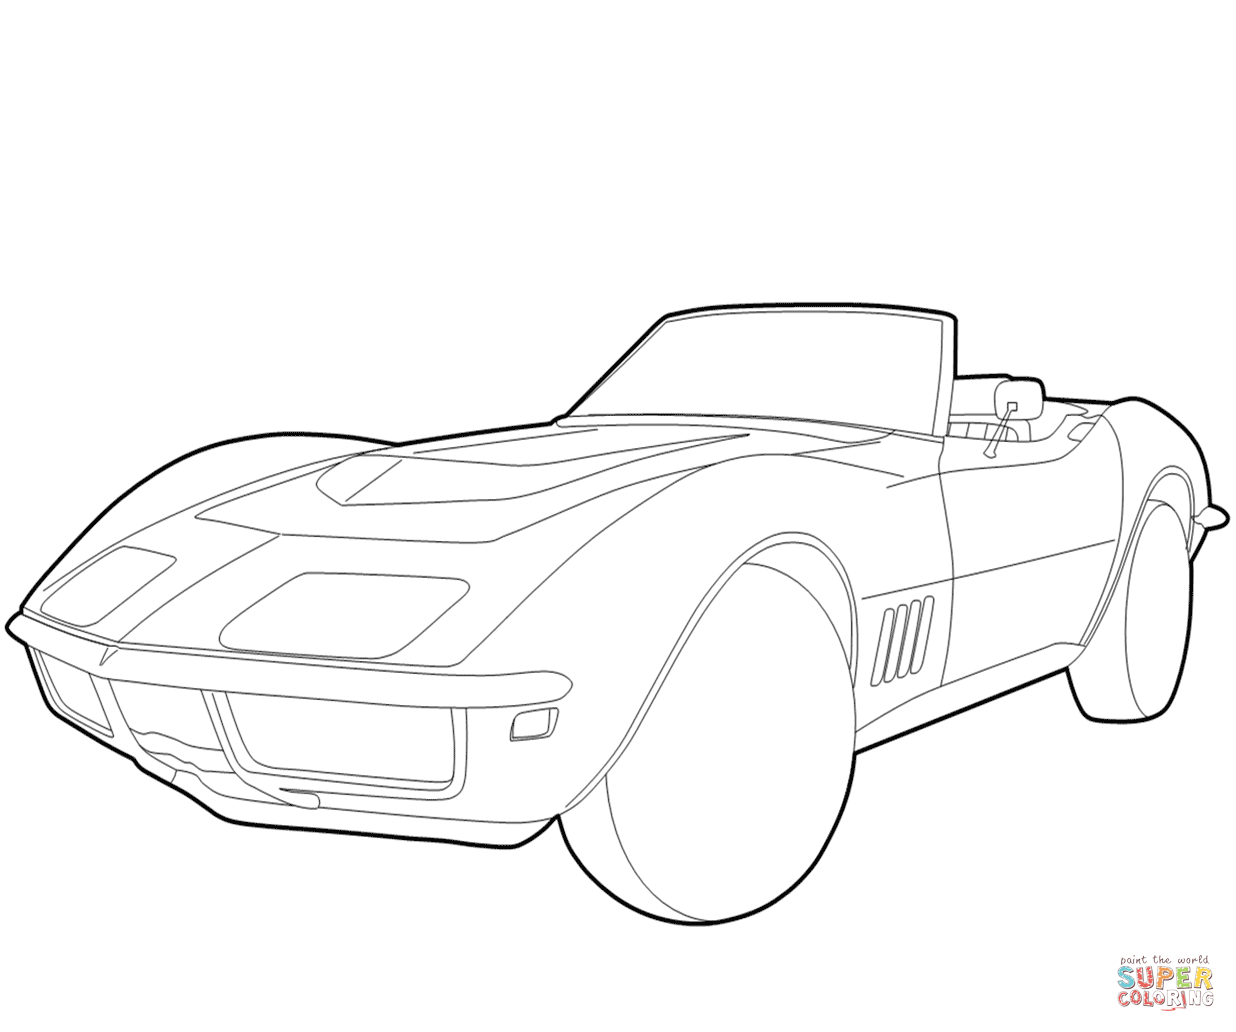 chevy logo drawing at getdrawings com